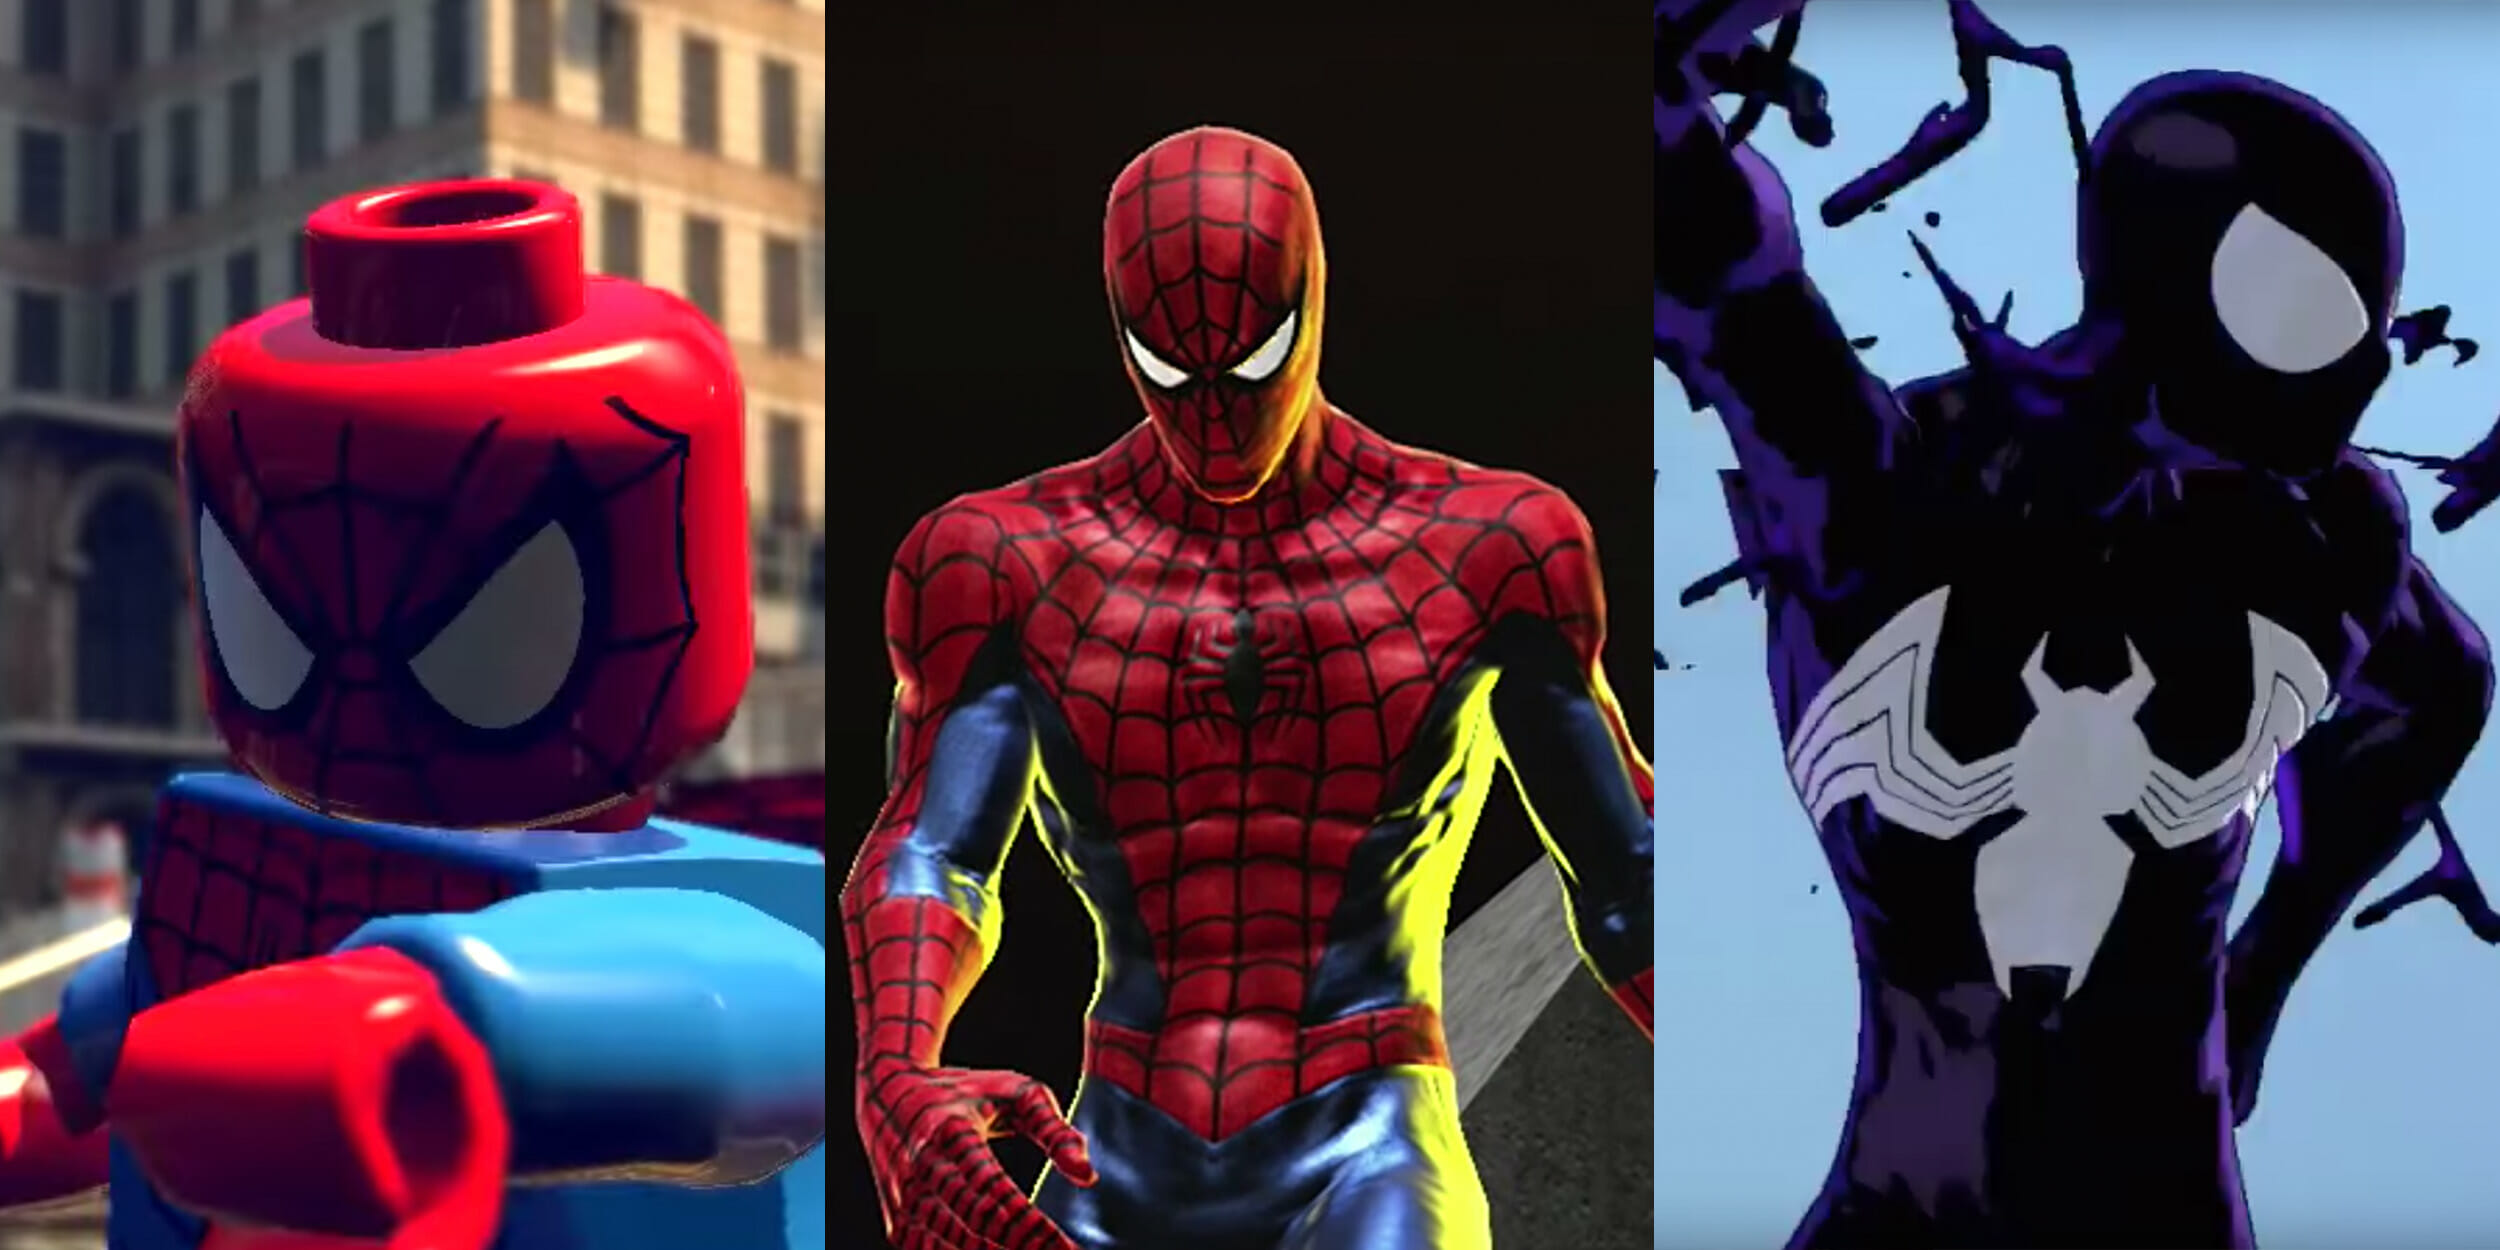 Spiderman Games The 12 Best Spider Man Games Of All Time Ranked From